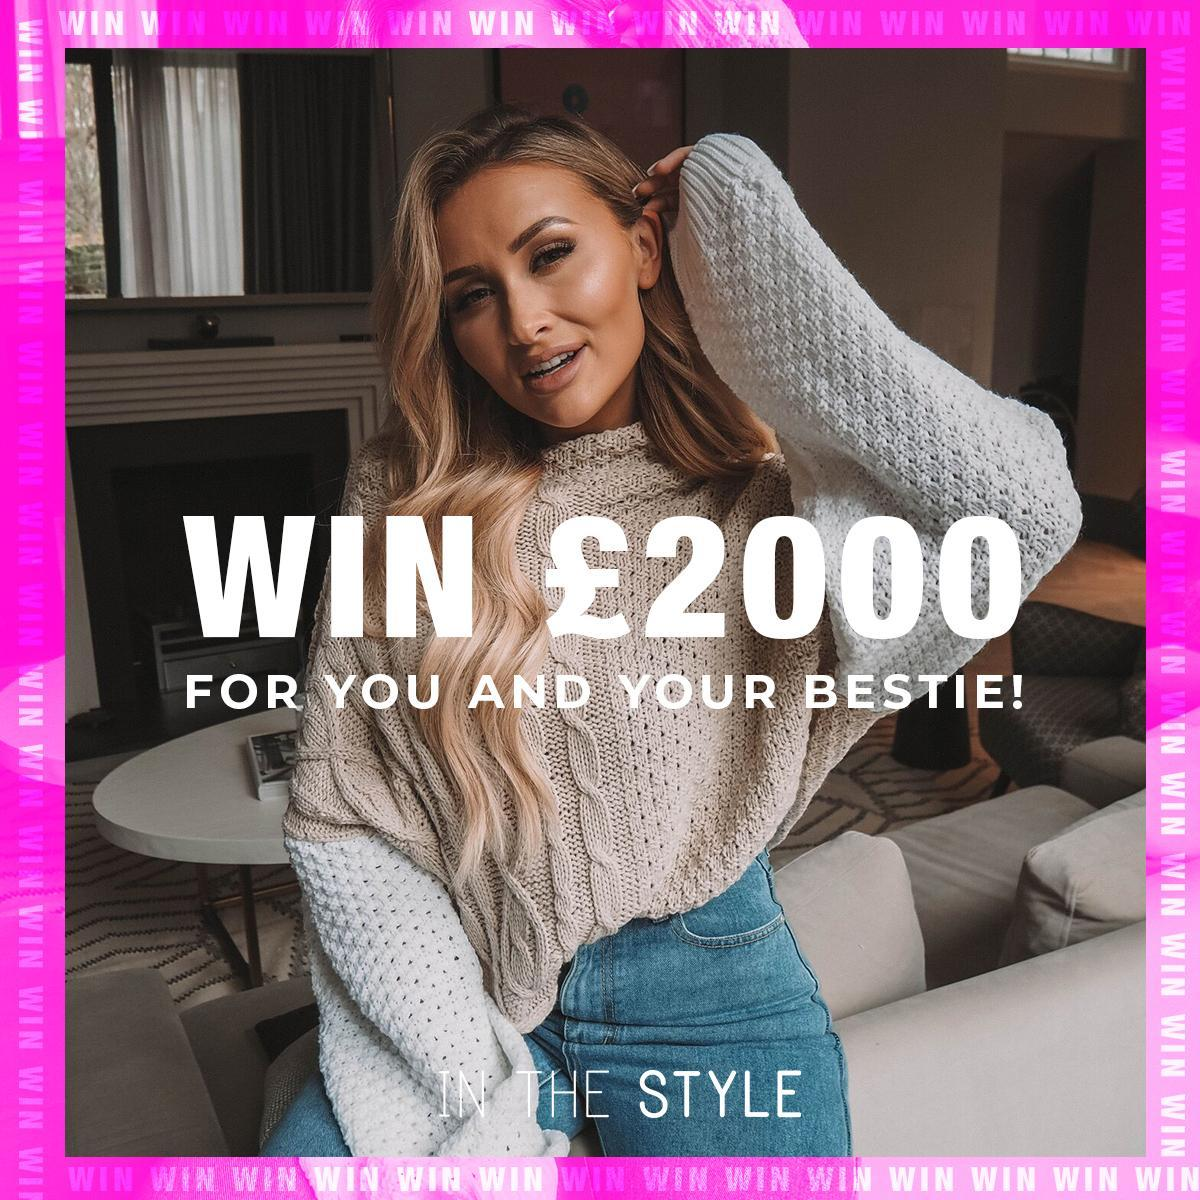 💸 #WIN £2000 💸 Win £1000 for you an your BF!  🤑  TO ENTER:  1. Like & RT this image  2. Tag your bestie below or on ANY post    3. Make sure you both follow @inthestyleUK    Winner picked on 25.01.19! Good luck dolls 💓